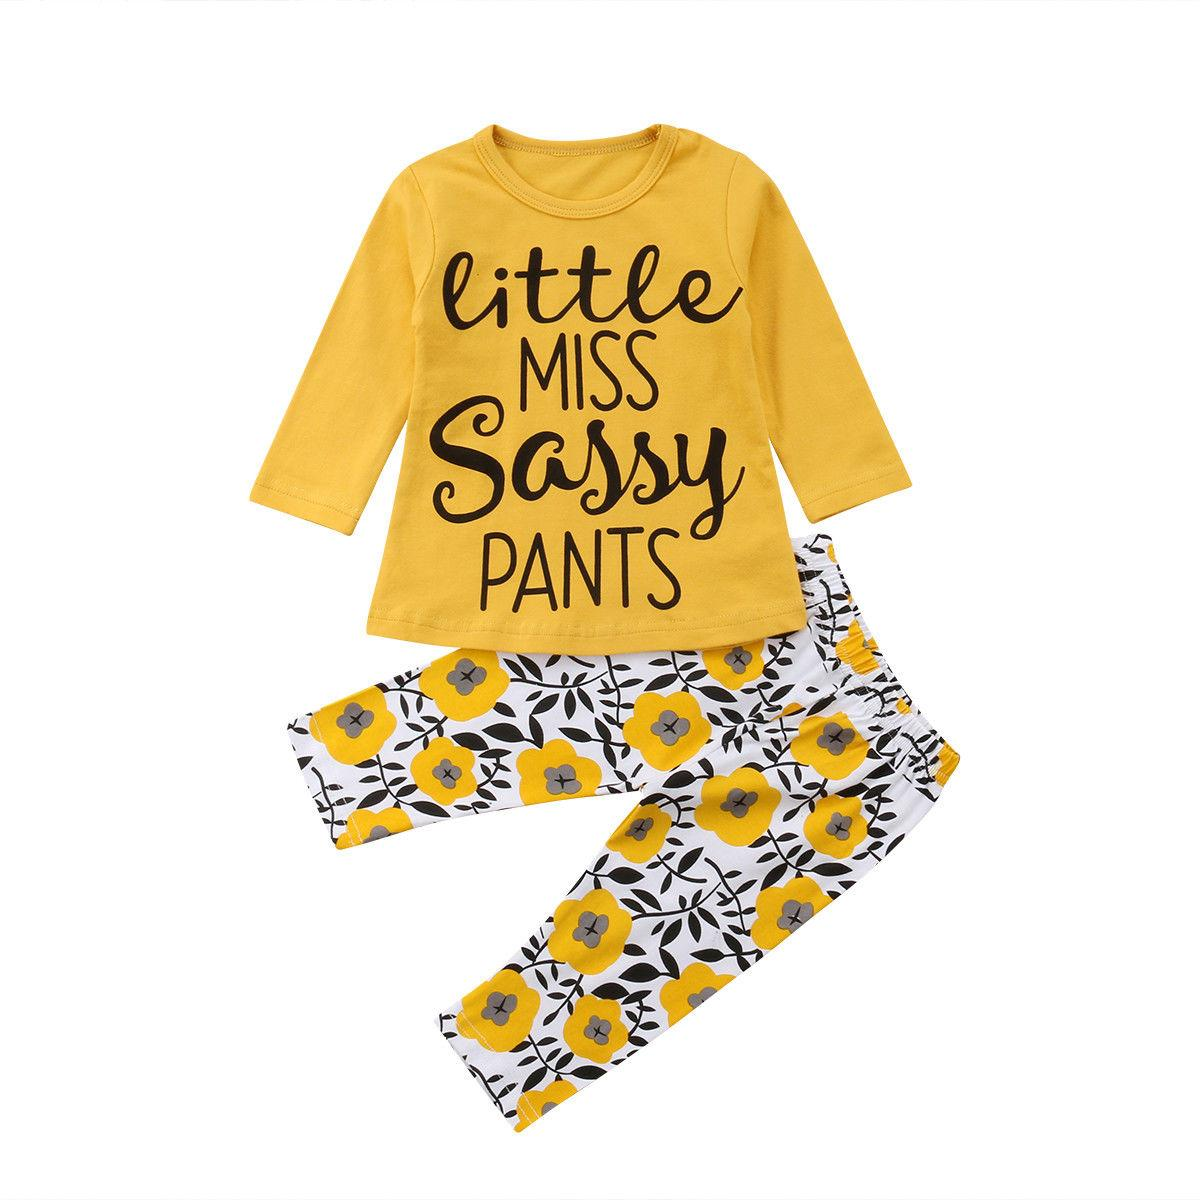 Yellowe Flower Kids Baby Girls Clothes T-shirt Tops +Pants 2PCS Set Outfits Long Sleeve Newborn Infant Toddler Baby Clothing